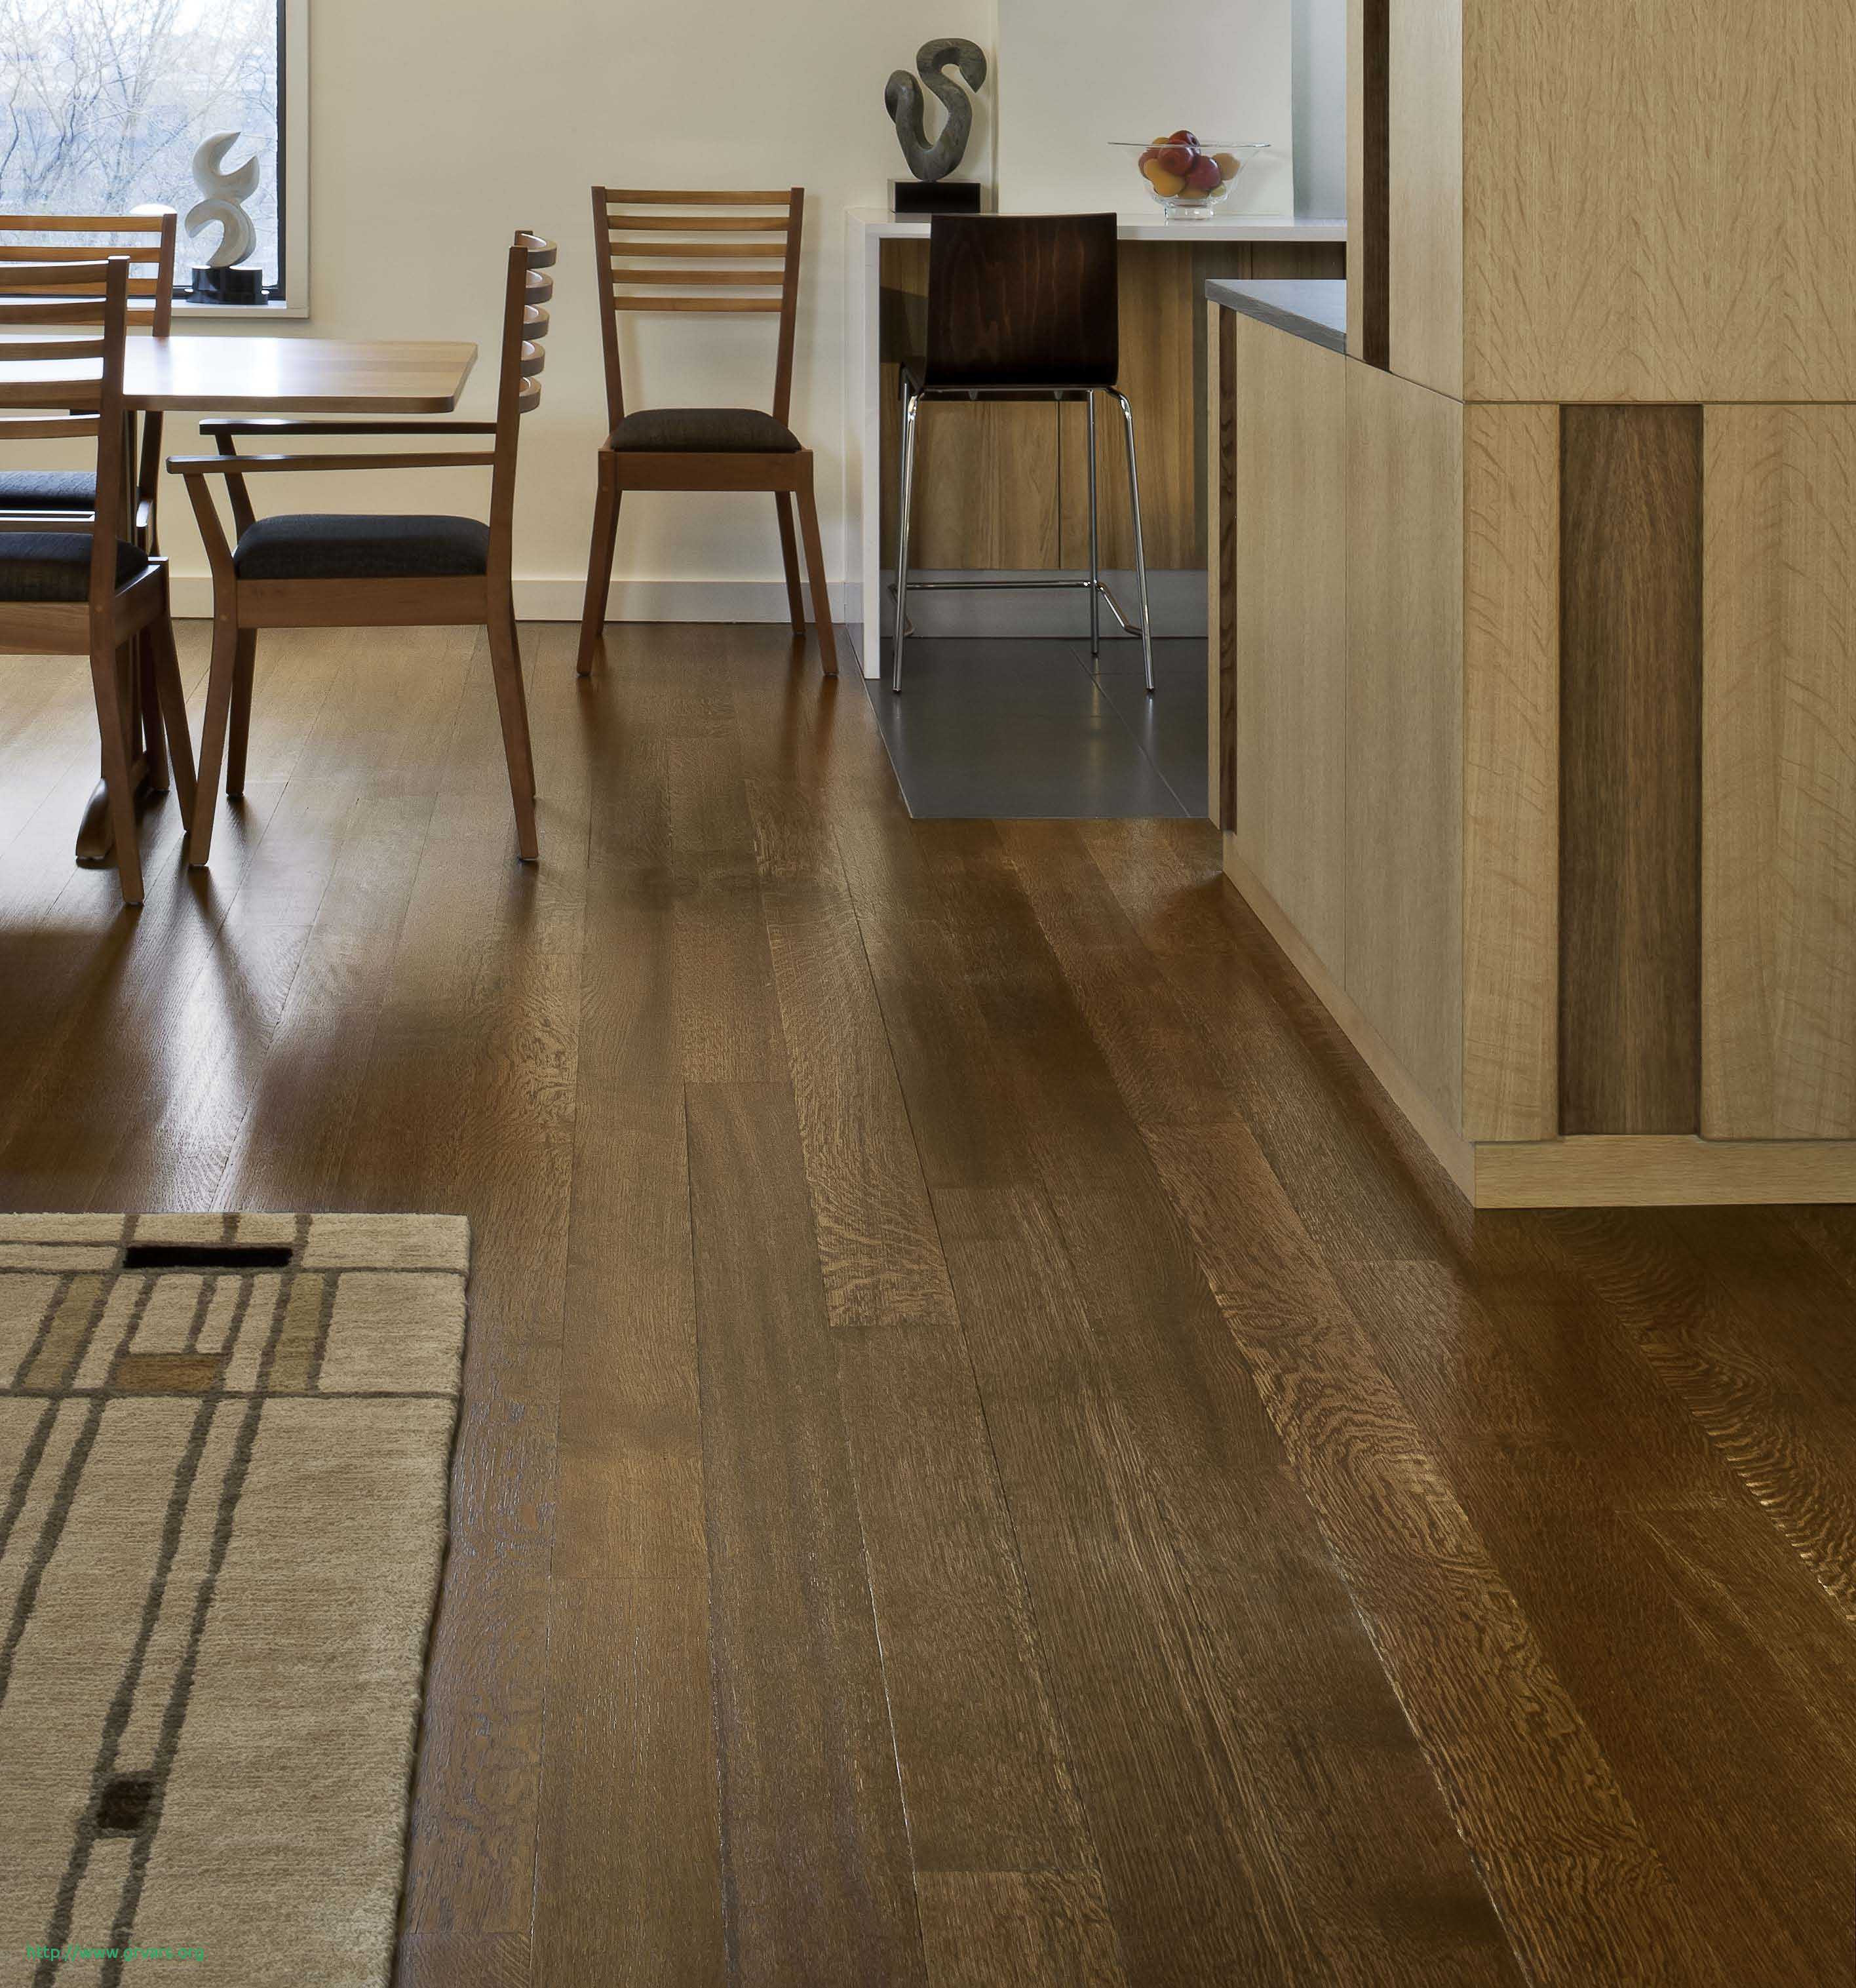 engineered hardwood flooring manufacturers of 24 impressionnant most affordable hardwood floors ideas blog with regard to full size of bedroom trendy discount hardwood flooring 11 hull rift sawn white oak floor manhattan